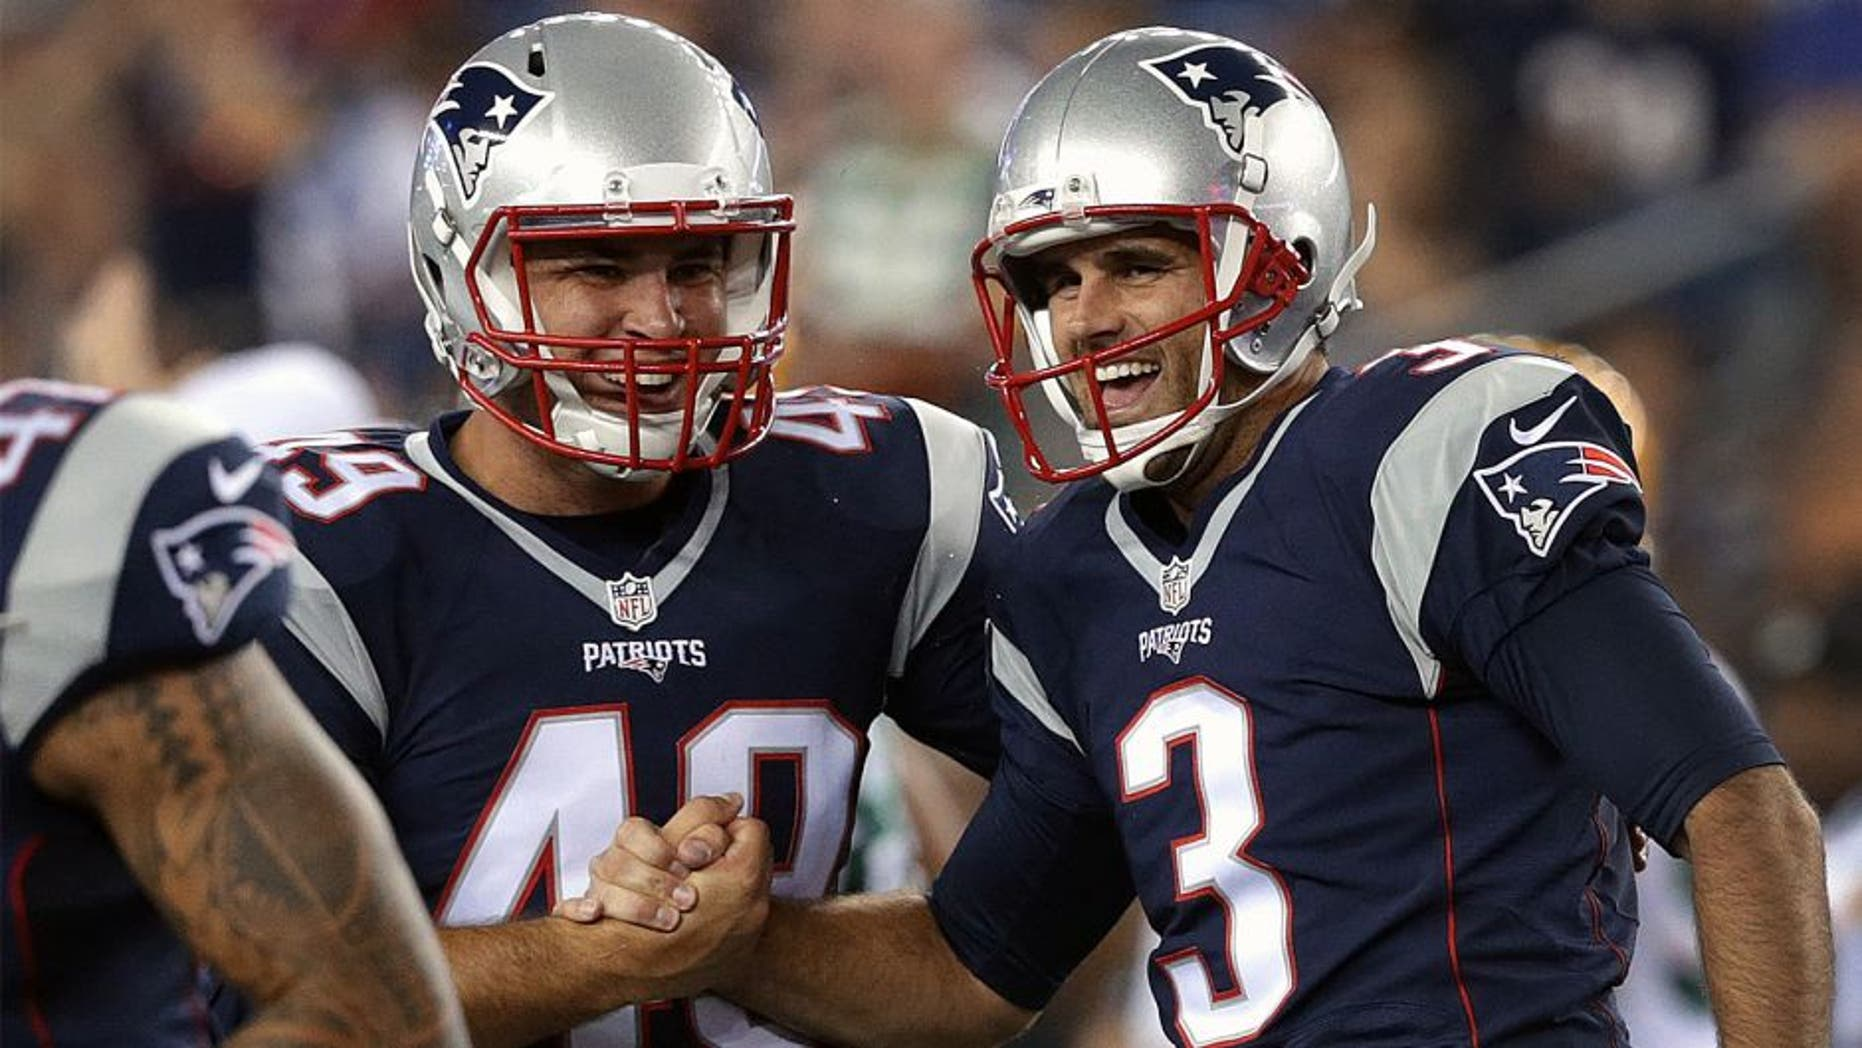 FOXBOROUGH, MA - AUGUST 13: (2nd quarter) New England Patriots kicker Stephen Gostkowski (3) and New England Patriots long snapper Joe Cardona (49) celebrate after Gostkowski kicked a 56 yard field goal at the end of the second quarter. The New England Patriots played the Green Bay Packers in an exhibition game at Gillette Stadium in Foxborough, Mass. on Aug. 13, 2015. (Photo by Barry Chin/The Boston Globe via Getty Images)